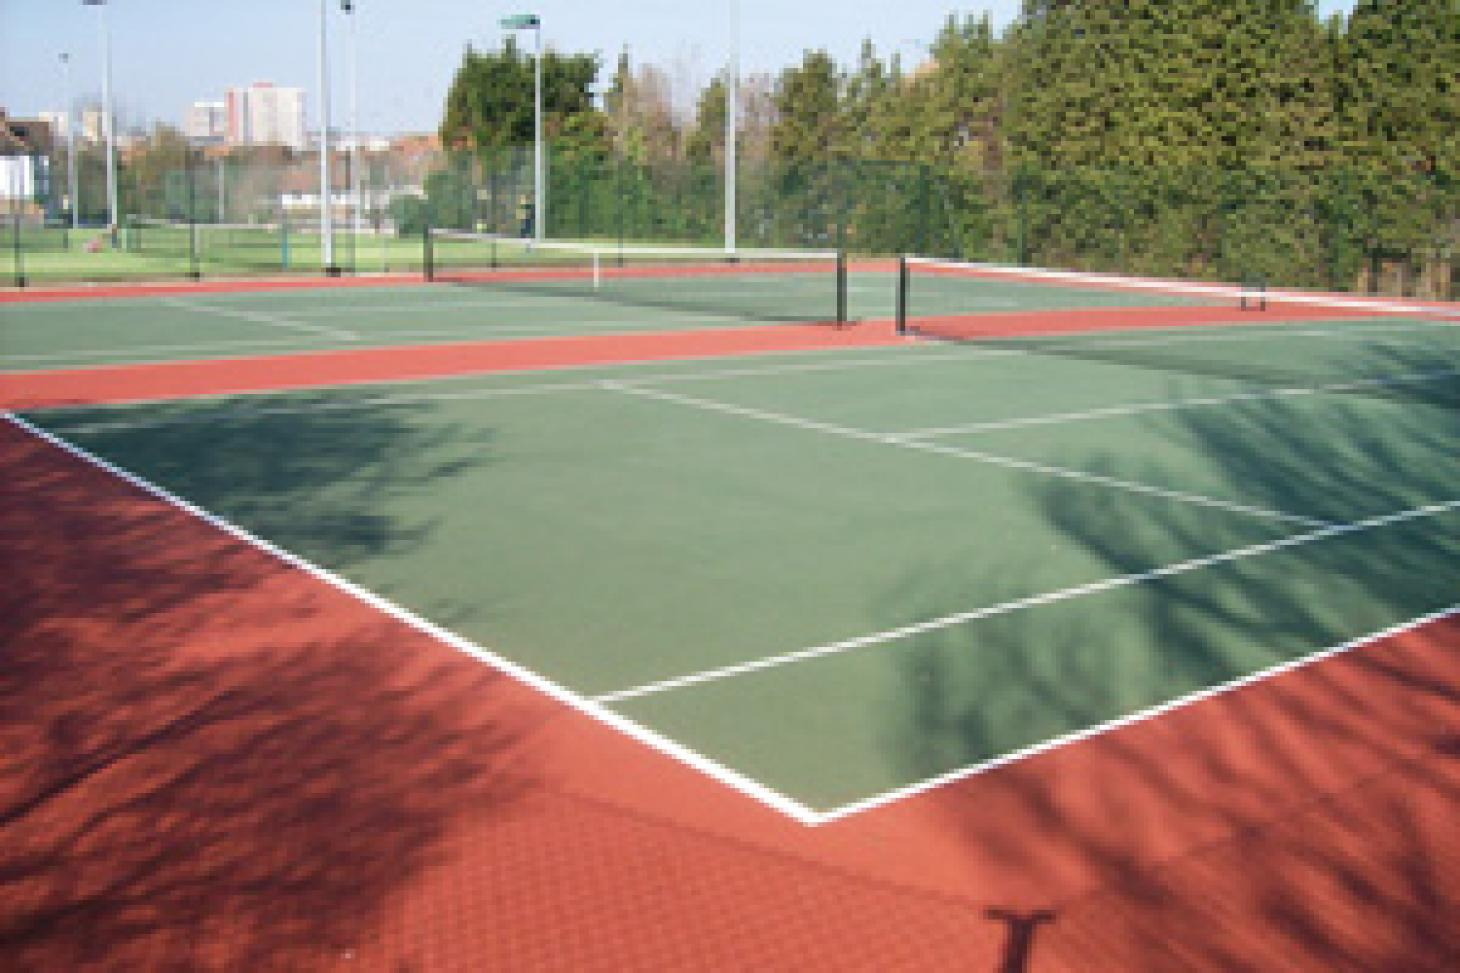 The Temple Fortune Club Outdoor | Astroturf tennis court